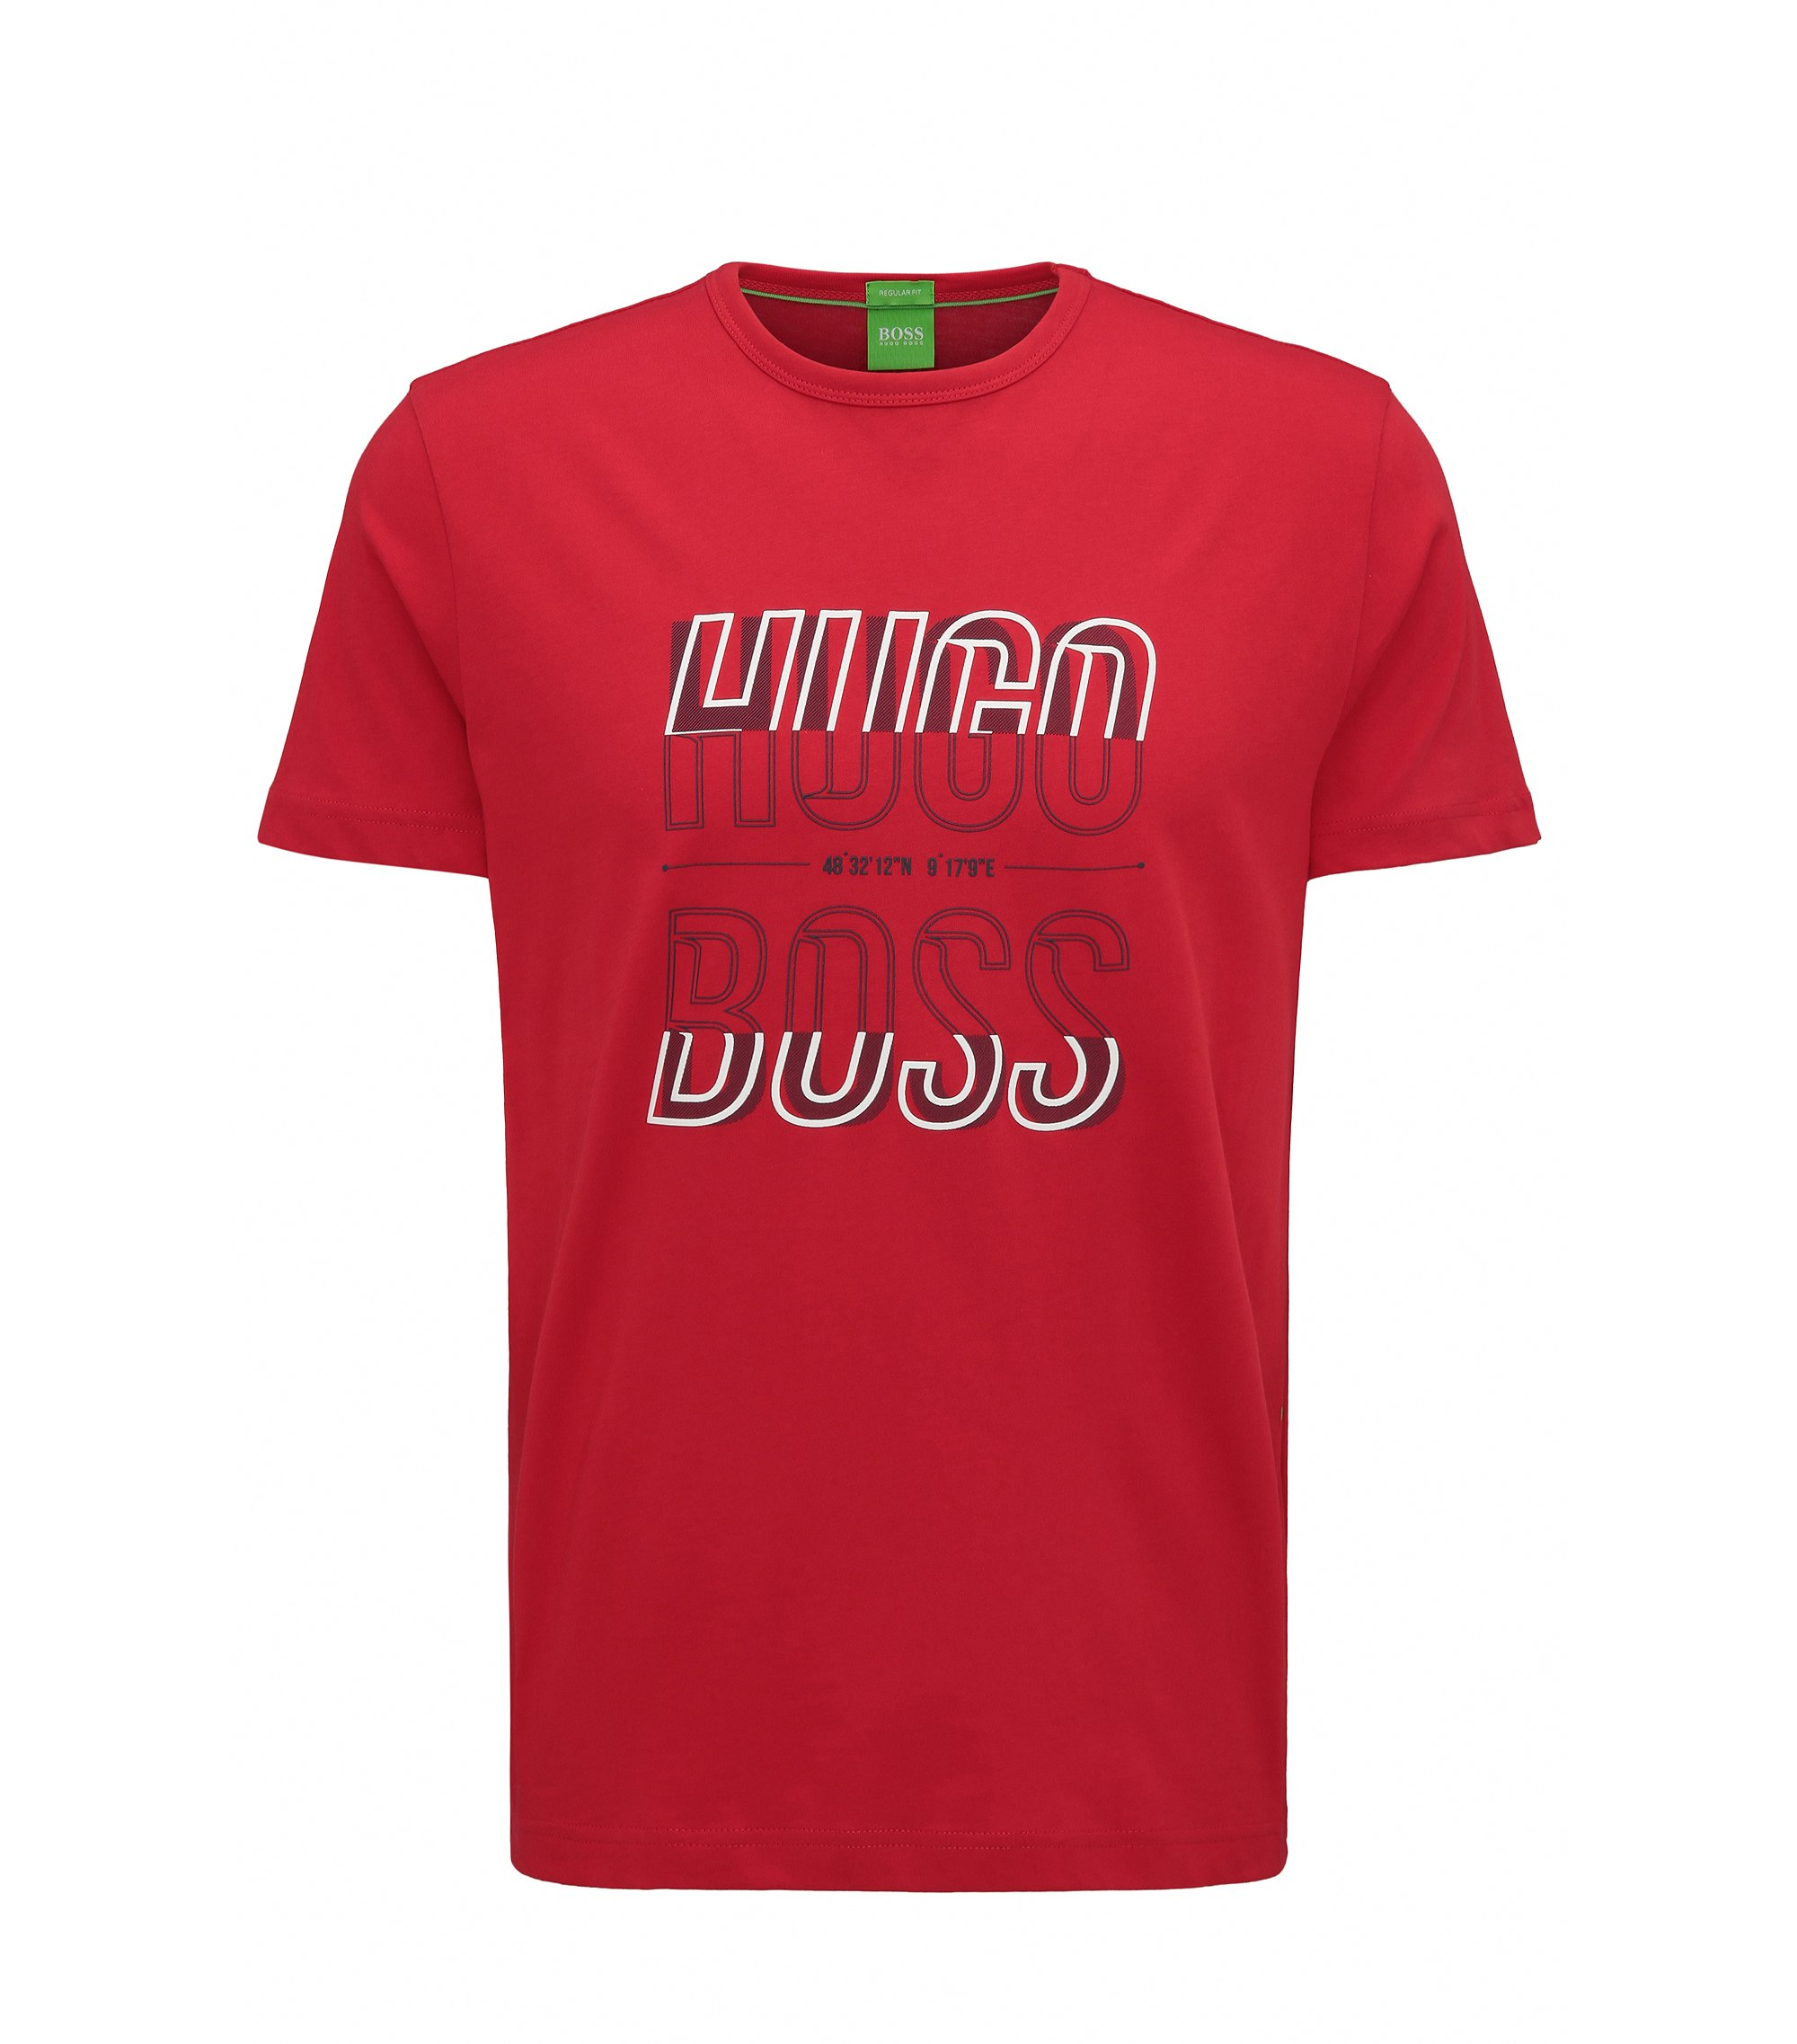 Cotton Graphic T-Shirt   Tee, Red